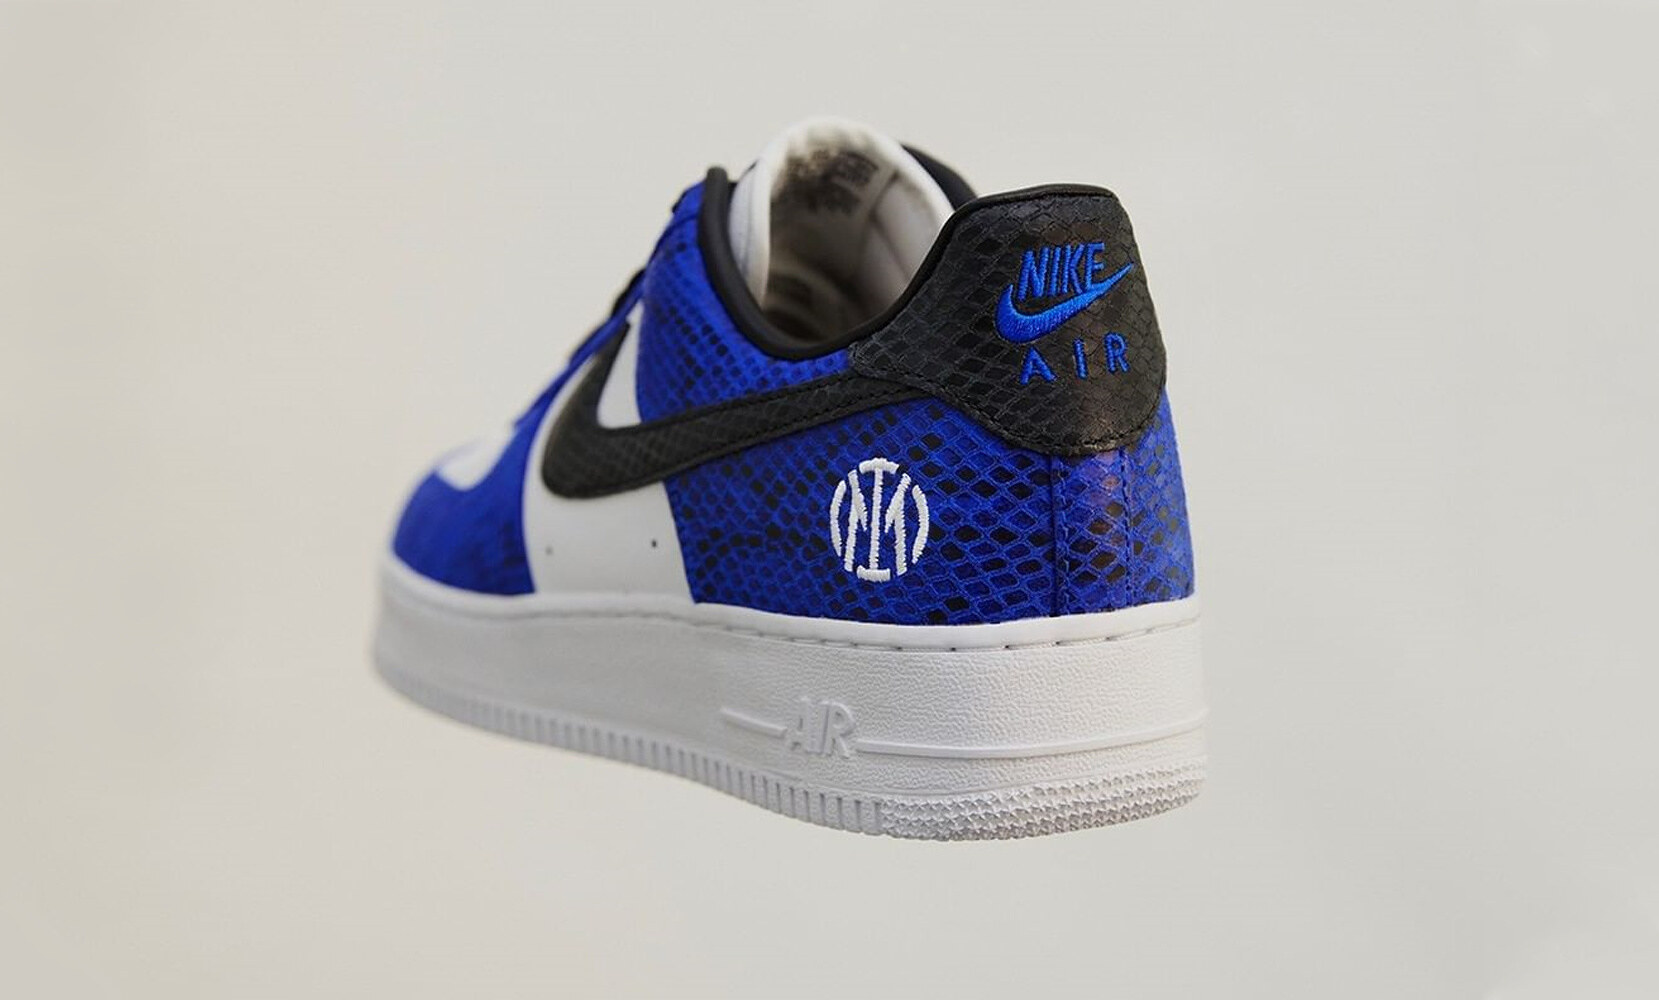 FC Internazionale Milano x Nike Air Force 1 Low